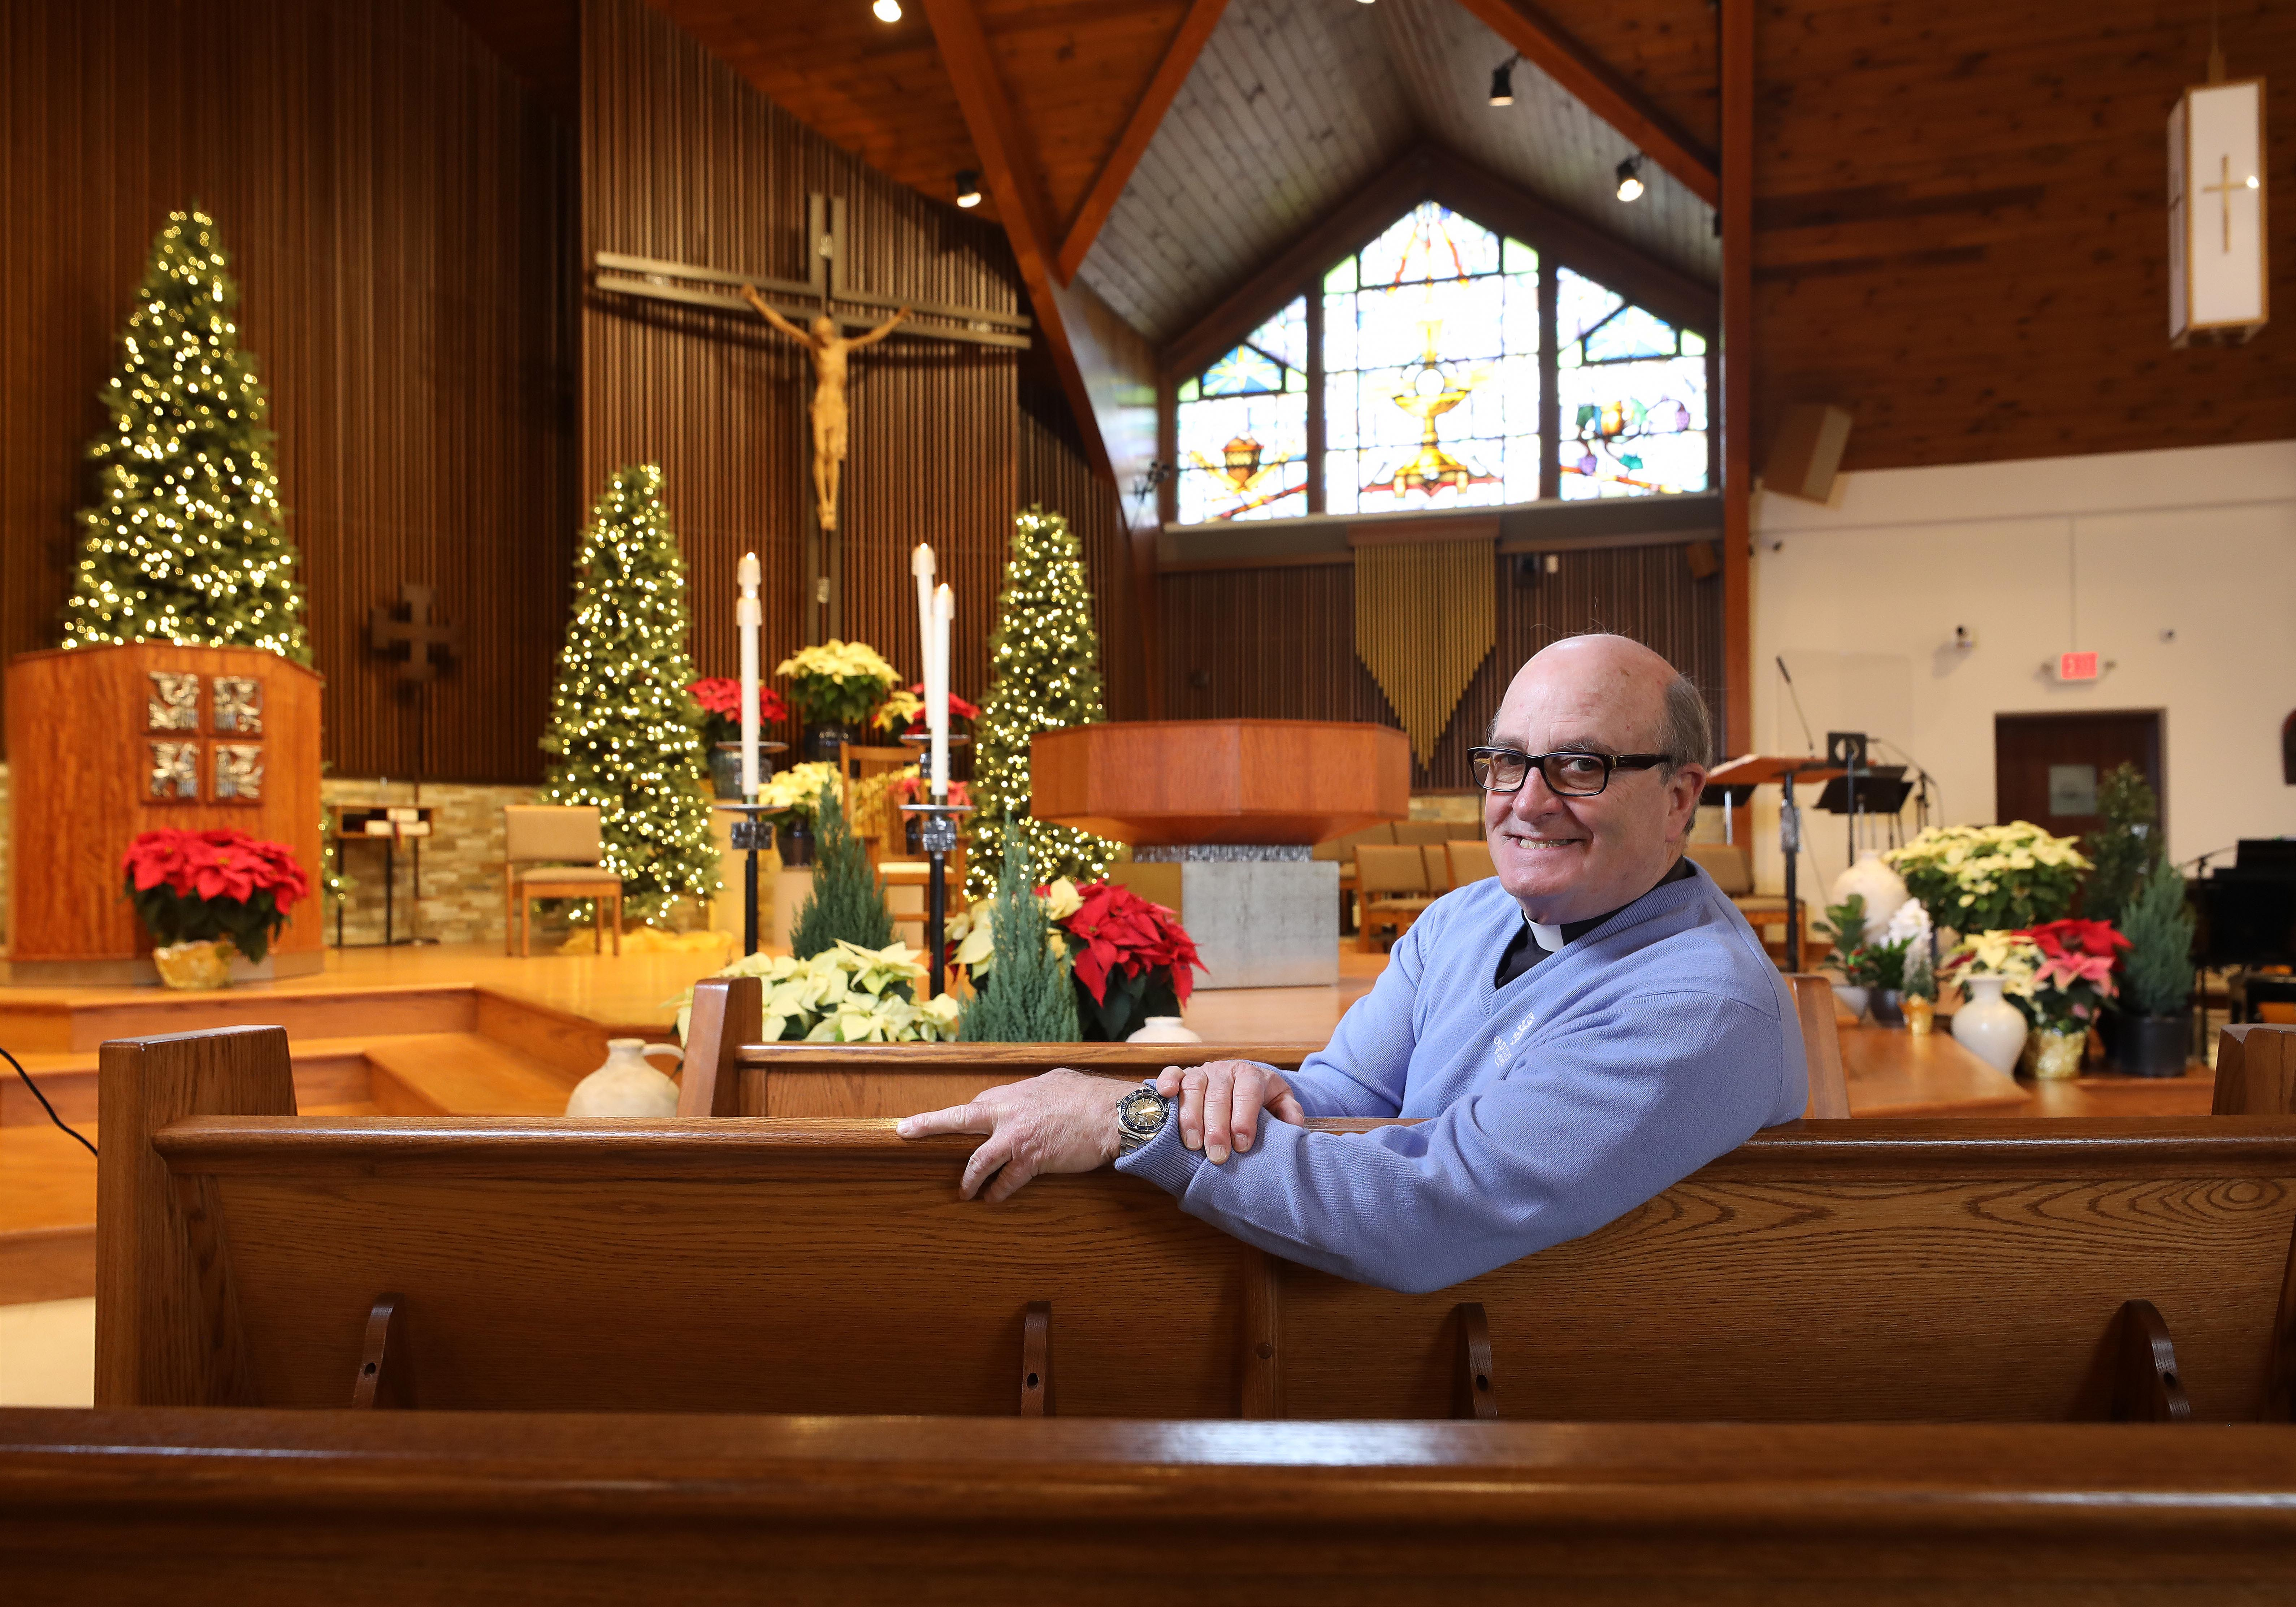 """The Rev. Robert Stagg of Upper Saddle River, N.J., has found young people still drawn to the church in times of need. """"A lot of Nones, once their mom has cancer, once their dad loses his job, once they have a scare or a death threat, you'd be surprised how they turn and say `what's it all about?'"""""""